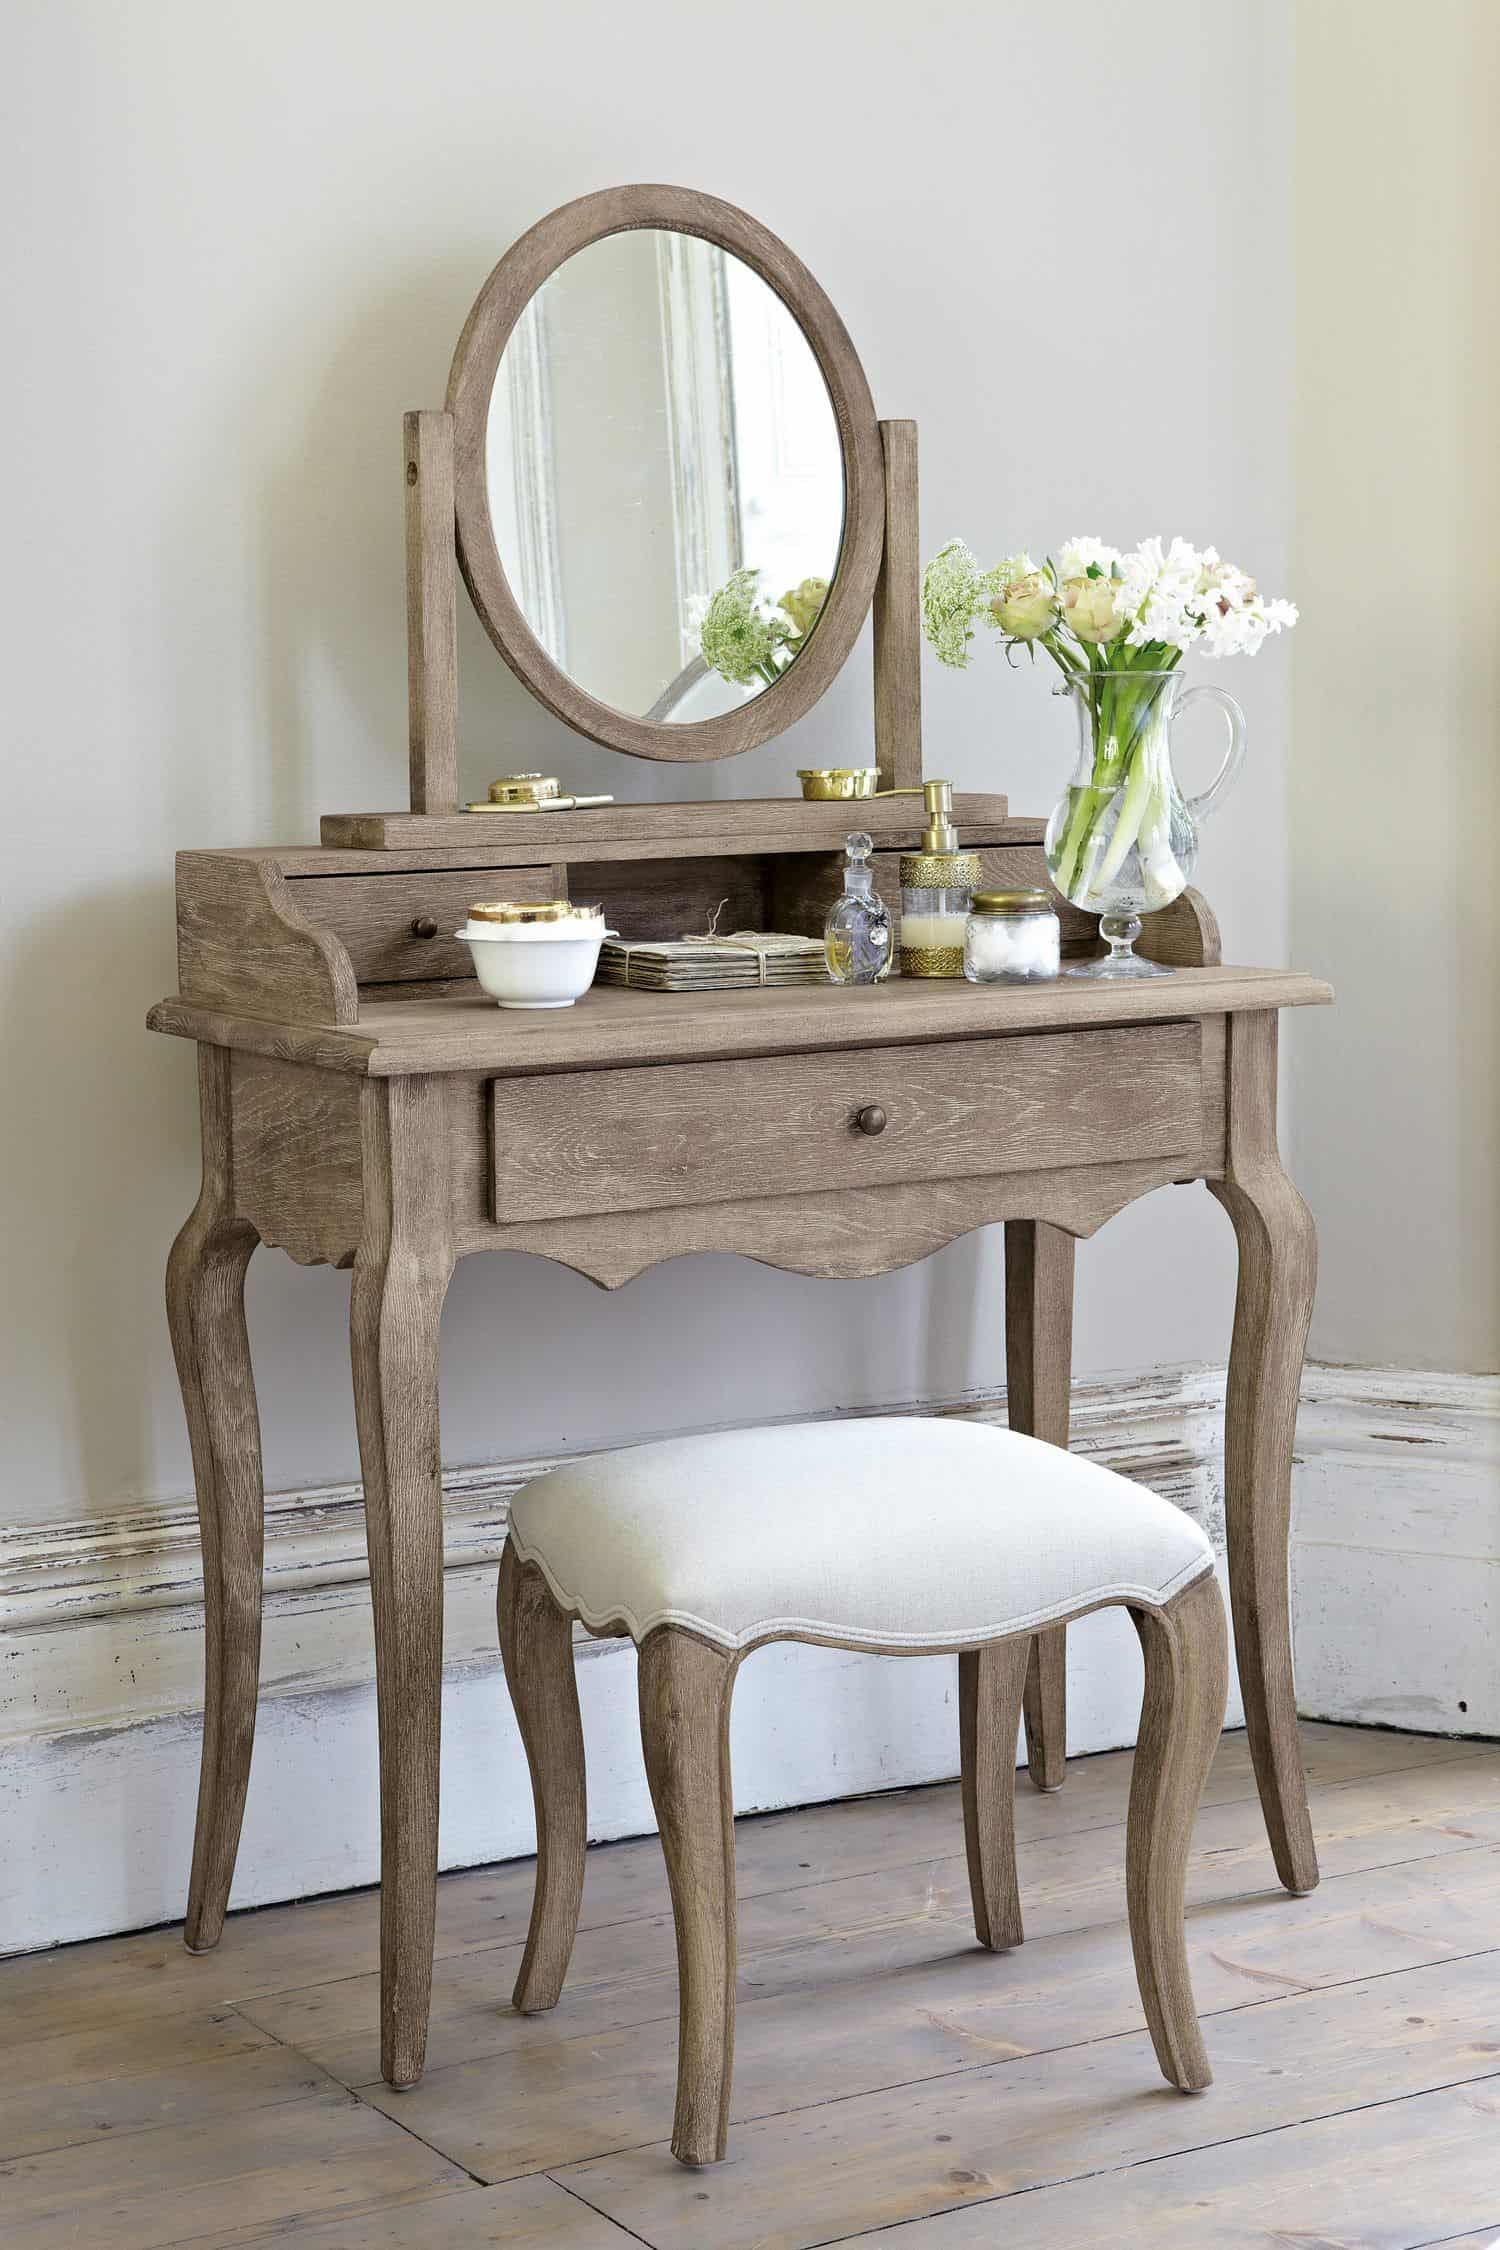 22. Dark Brown Wood Inspired Vanity Table